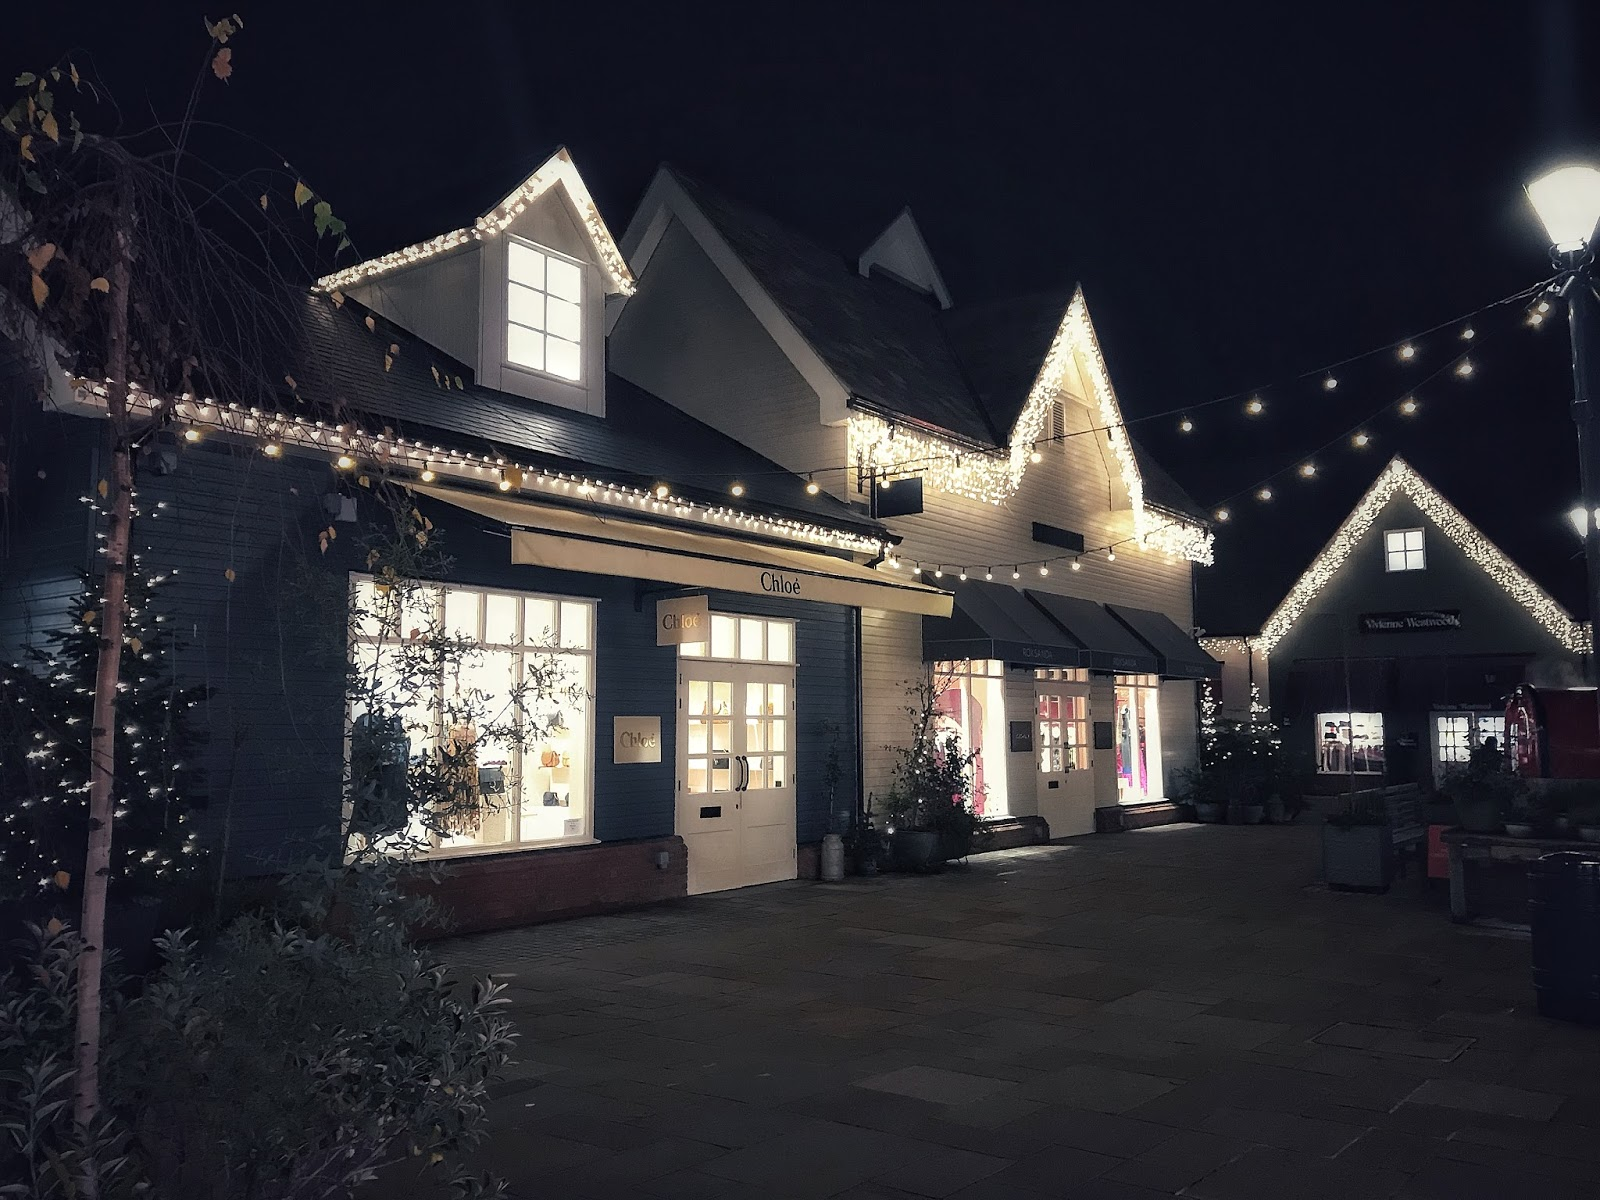 Bicester Village Christmas Shopping at night